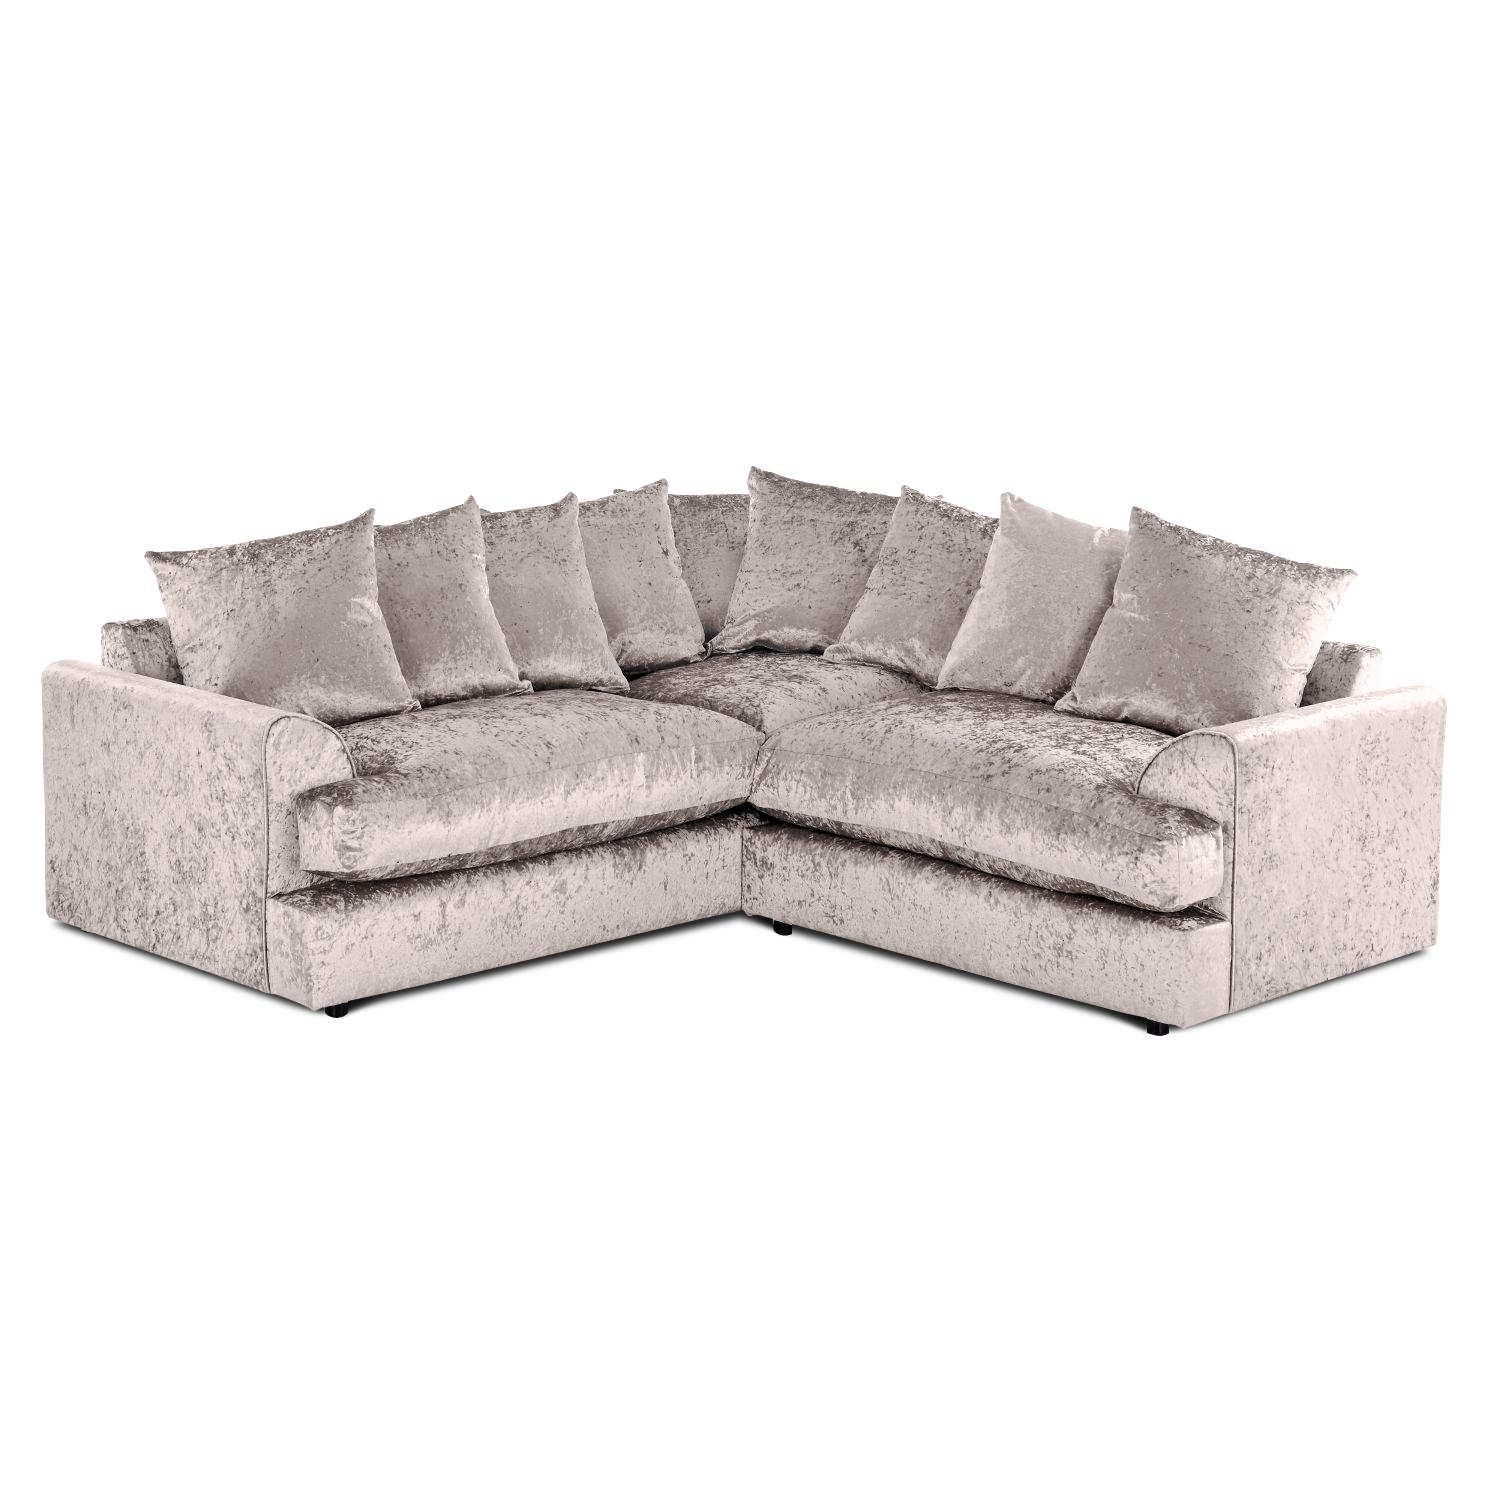 Sofas Next Day Delivery From Worlds Everything For The Home